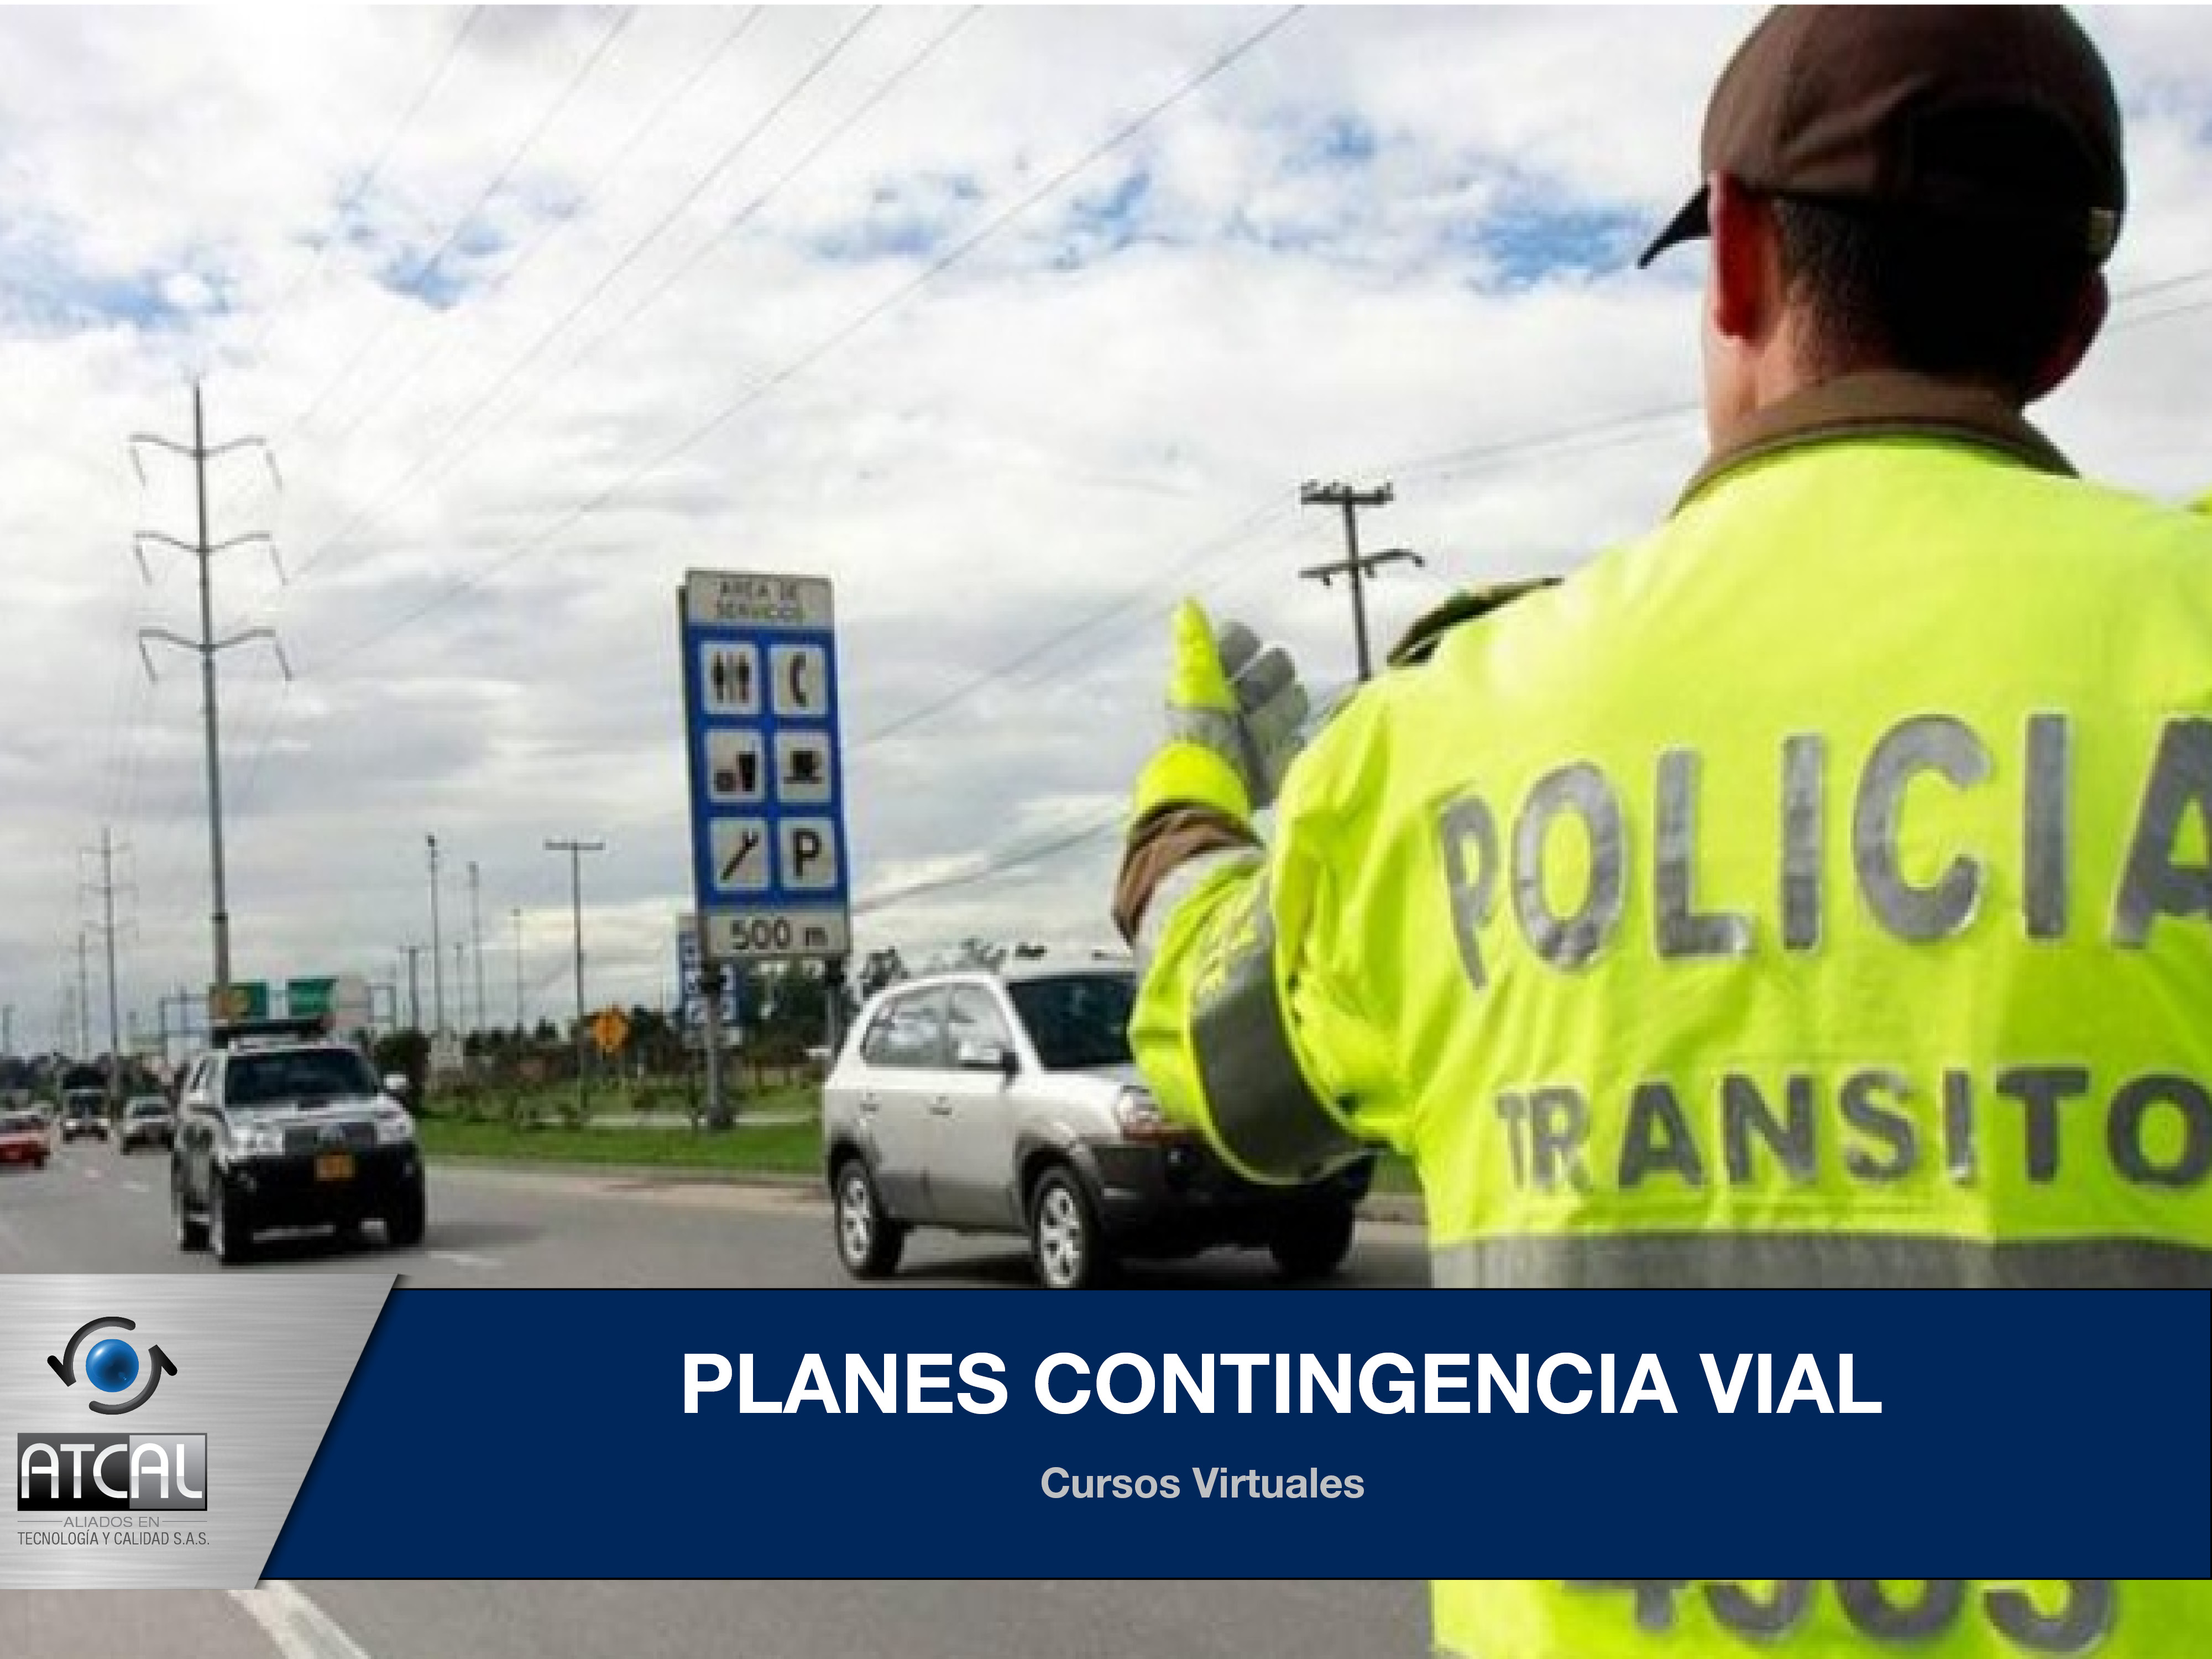 Planes de Contingencia Vial (Emergencias, Accidentes e Incidentes)